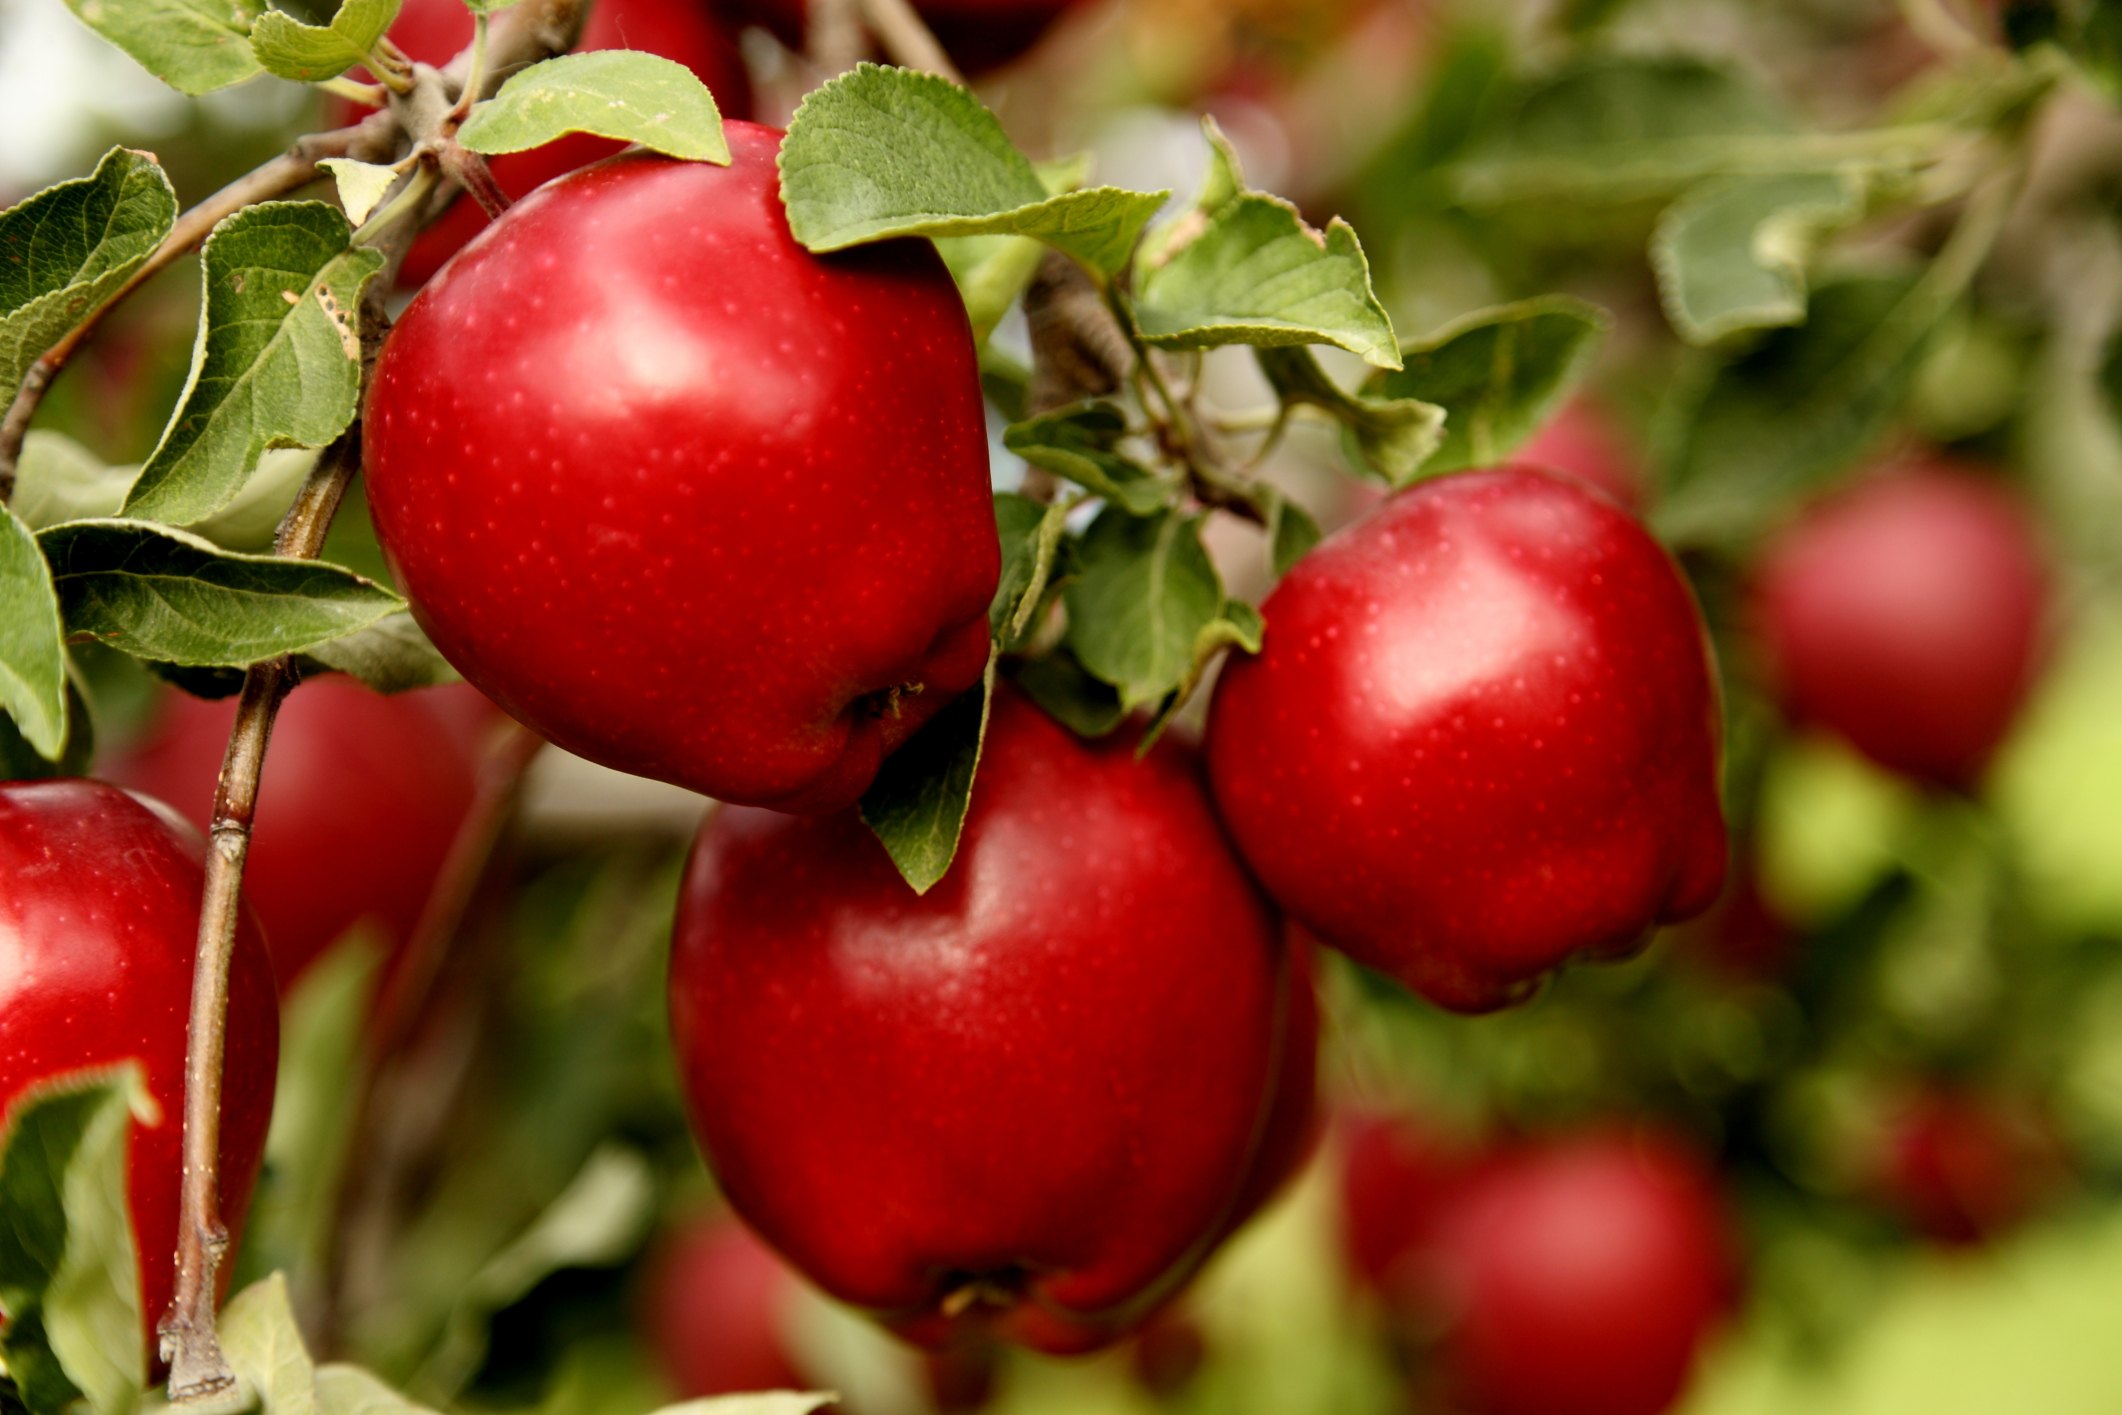 When Are Red Delicious Apples Ripe